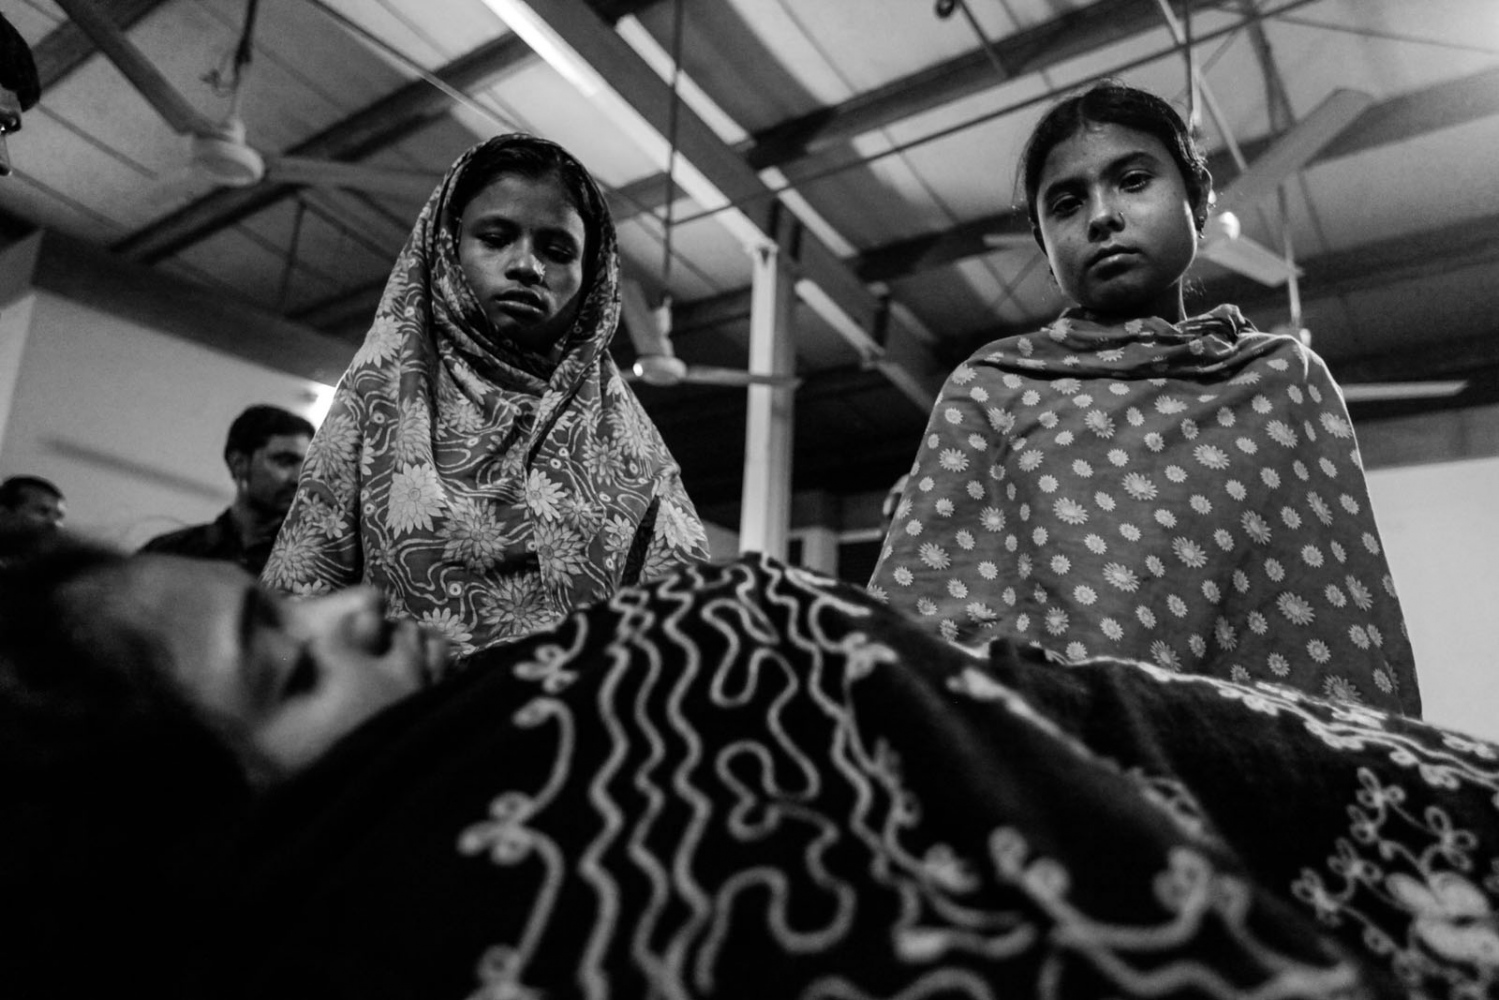 Colleagues stand beside Asma, a garment worker, who was injured in a devastating fire at Tazreen garment factory in Savar, outskirts of Dhaka. A fire swept through Tazreen Fashion factory in the Ashulia industrial belt of Dhaka, on the outskirts of Bangladesh's capital killing more than 100 people, in the country's worst ever factory blaze.